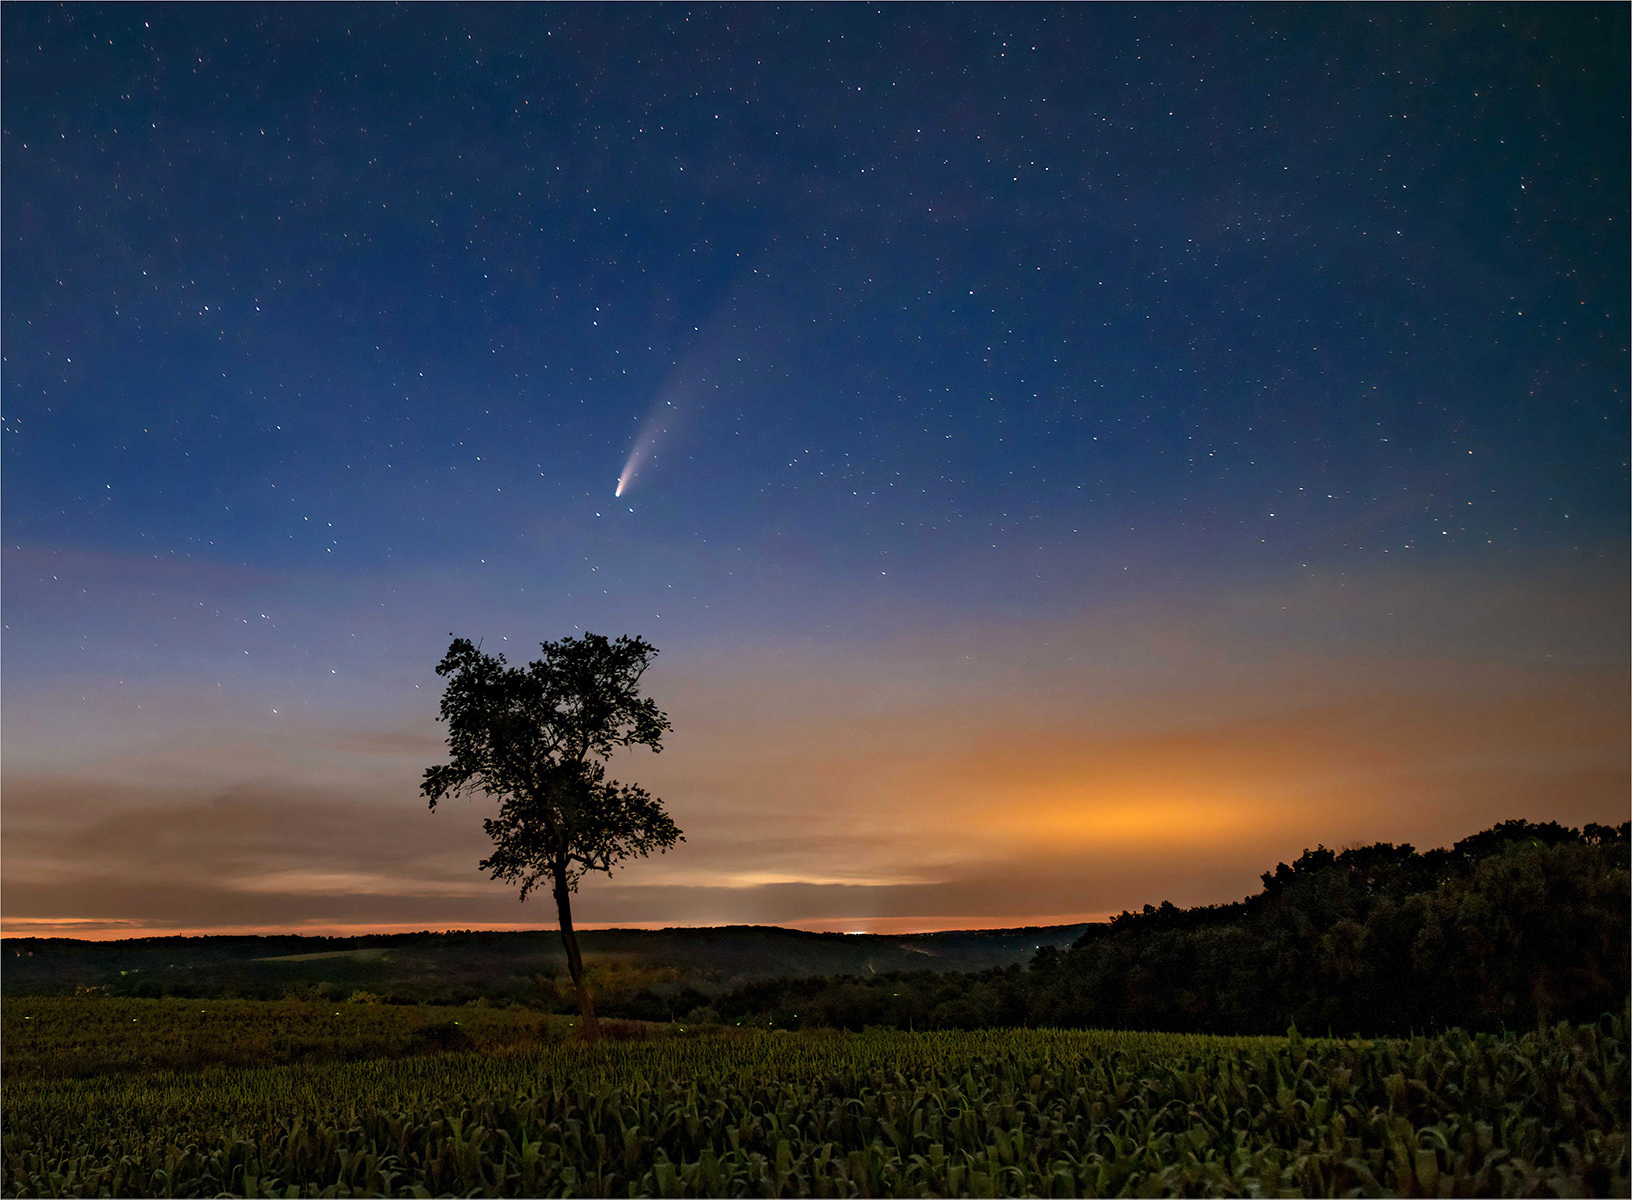 Comet NEOWISE passing over the Litchfield Hills, Connecticut